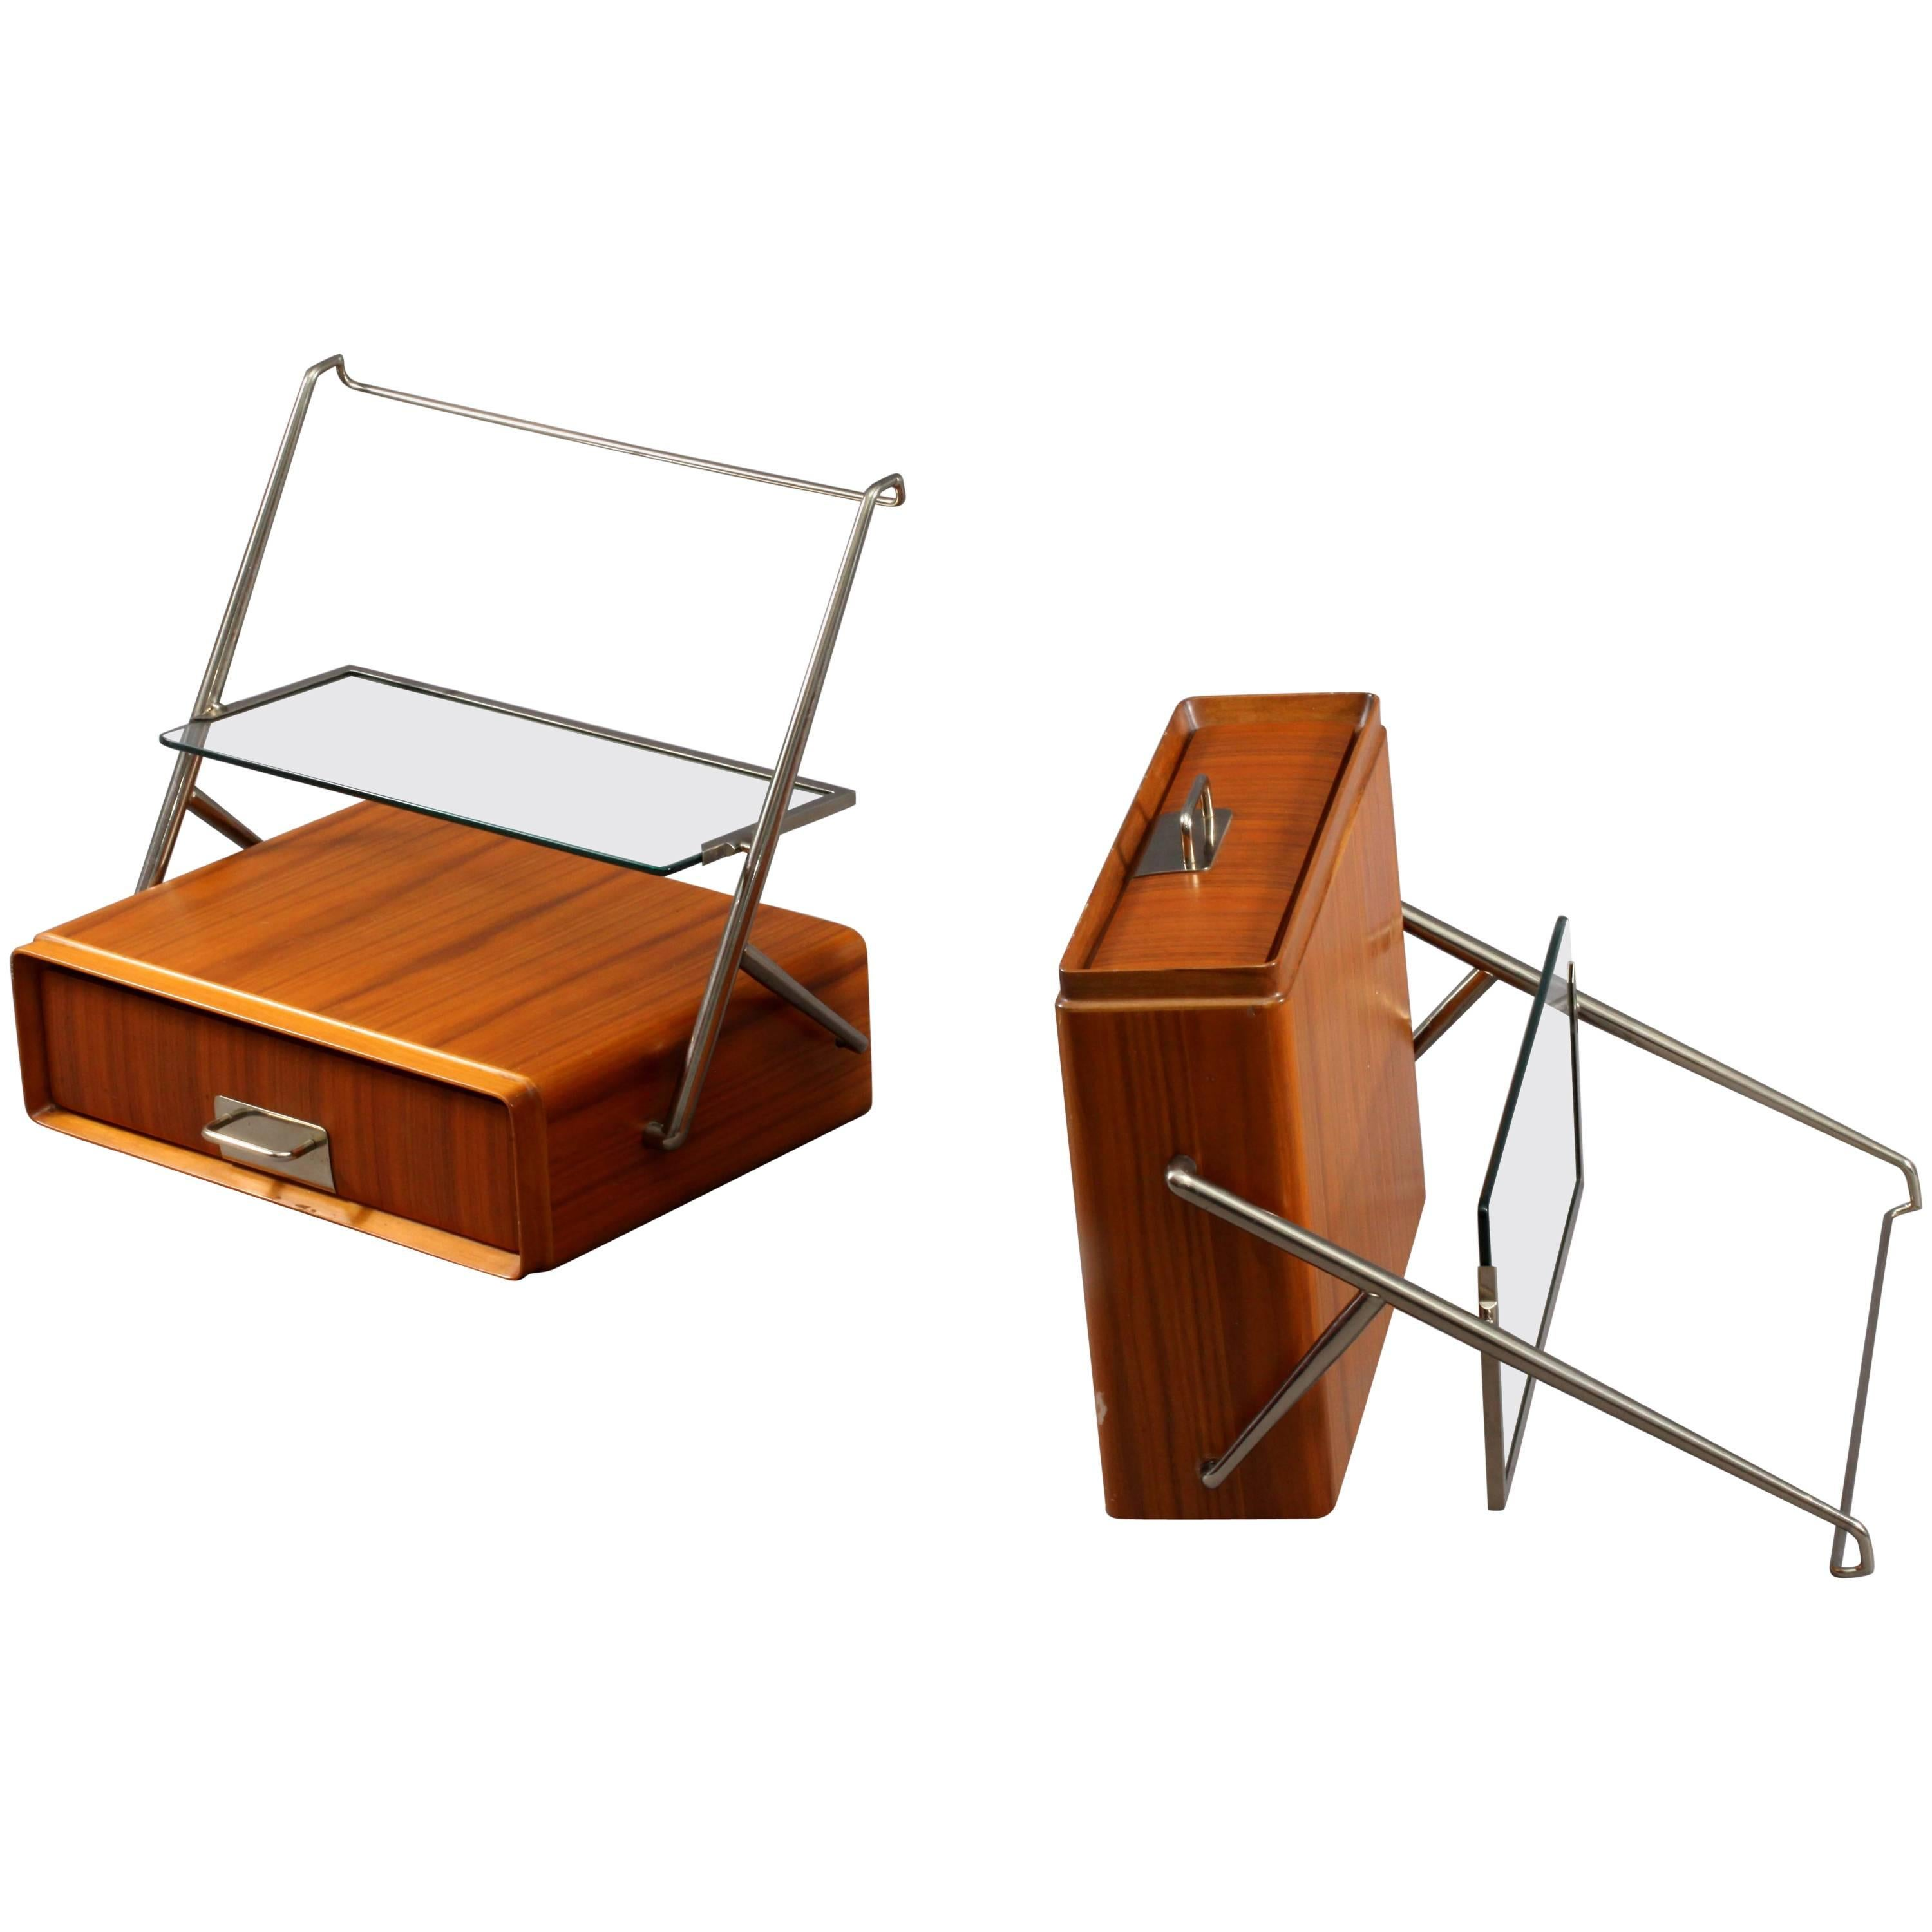 Silvio Cavatorta Wall Mounted Bedside Tables For Sale